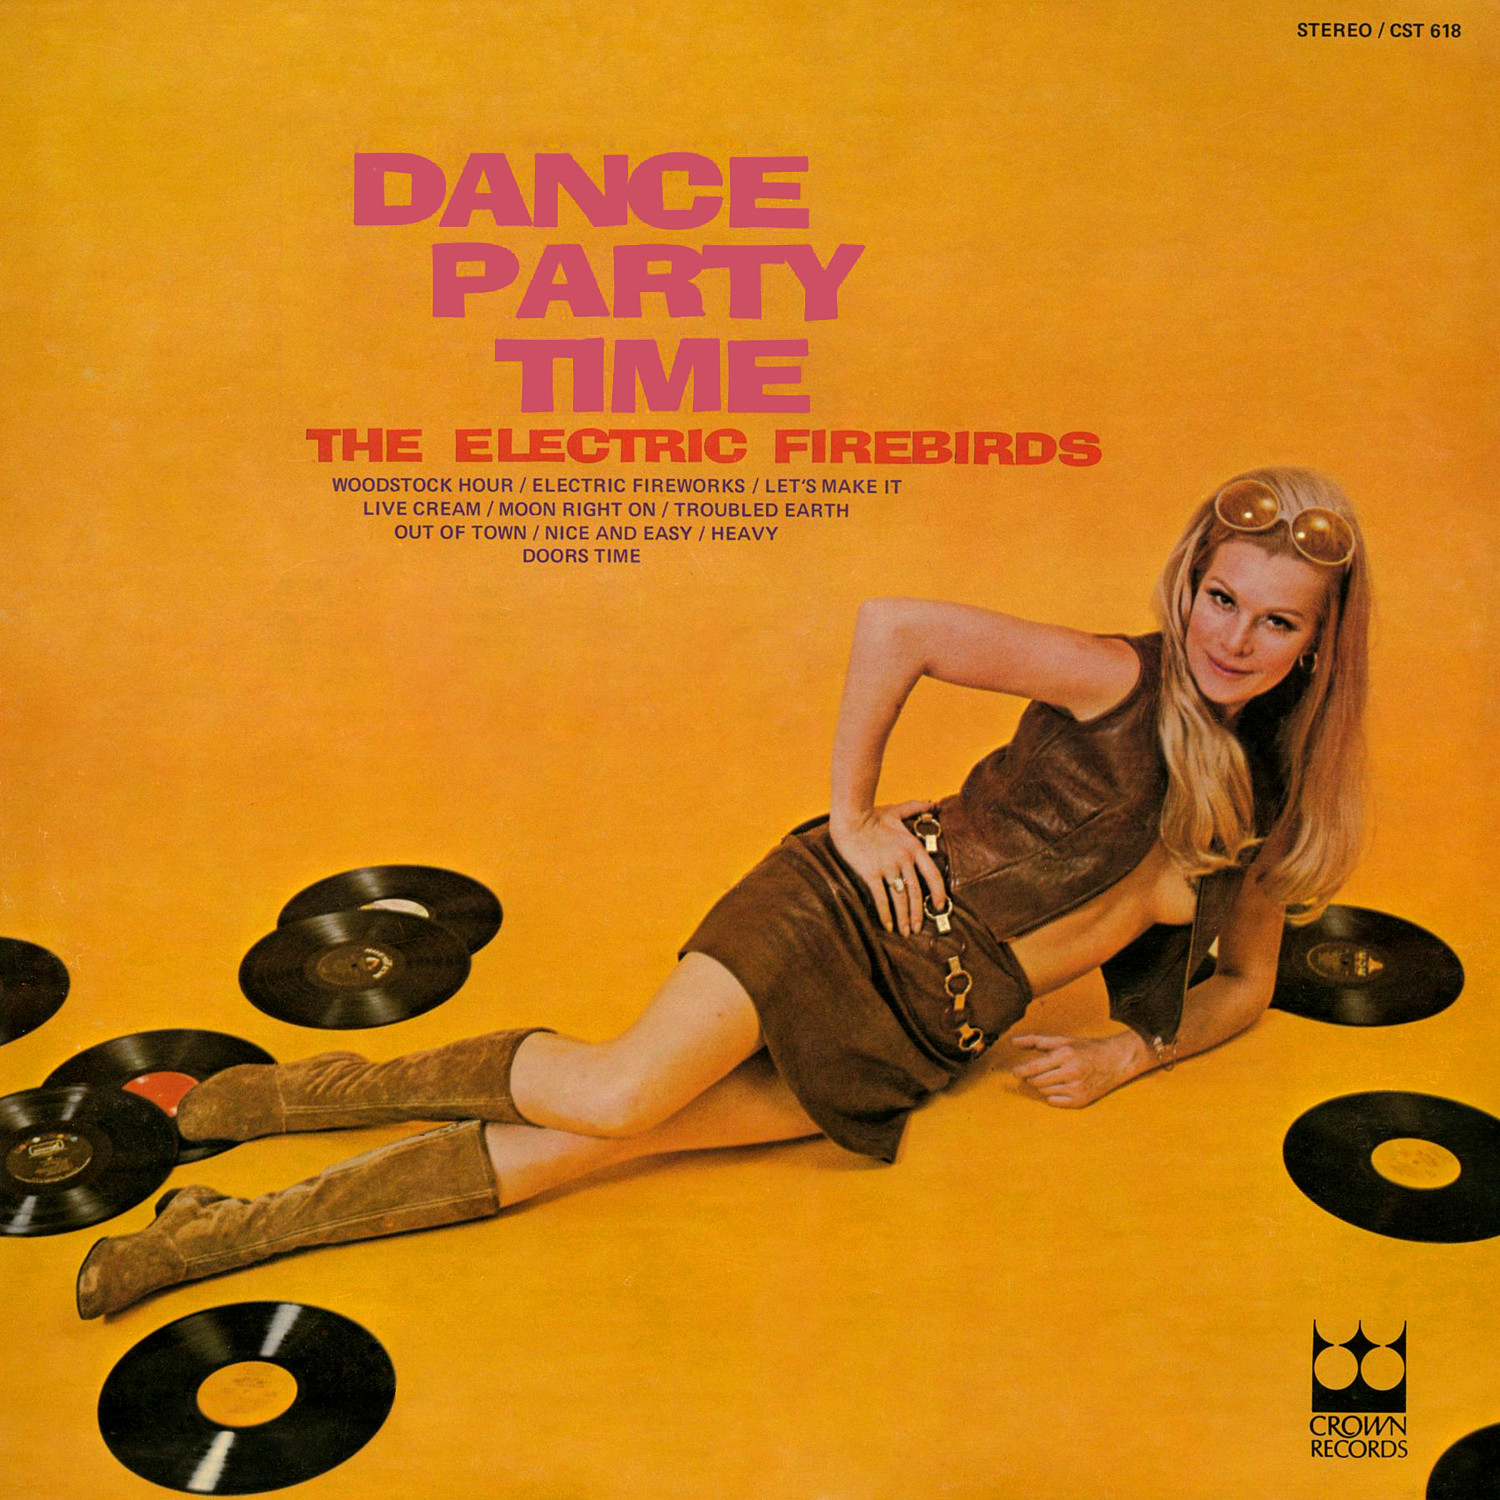 The Electric Firebirds - Dance Party Time